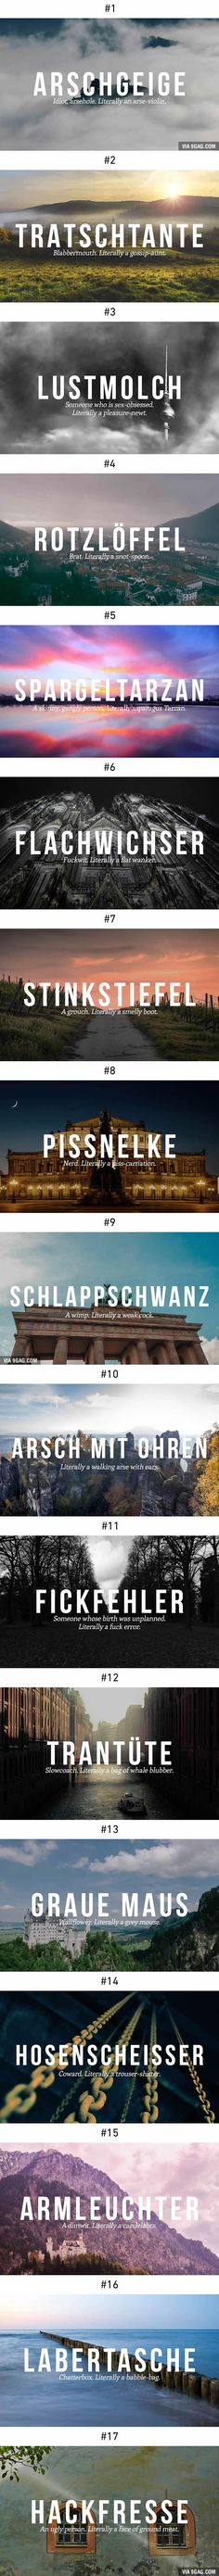 Brilliant German Insults We Need In English